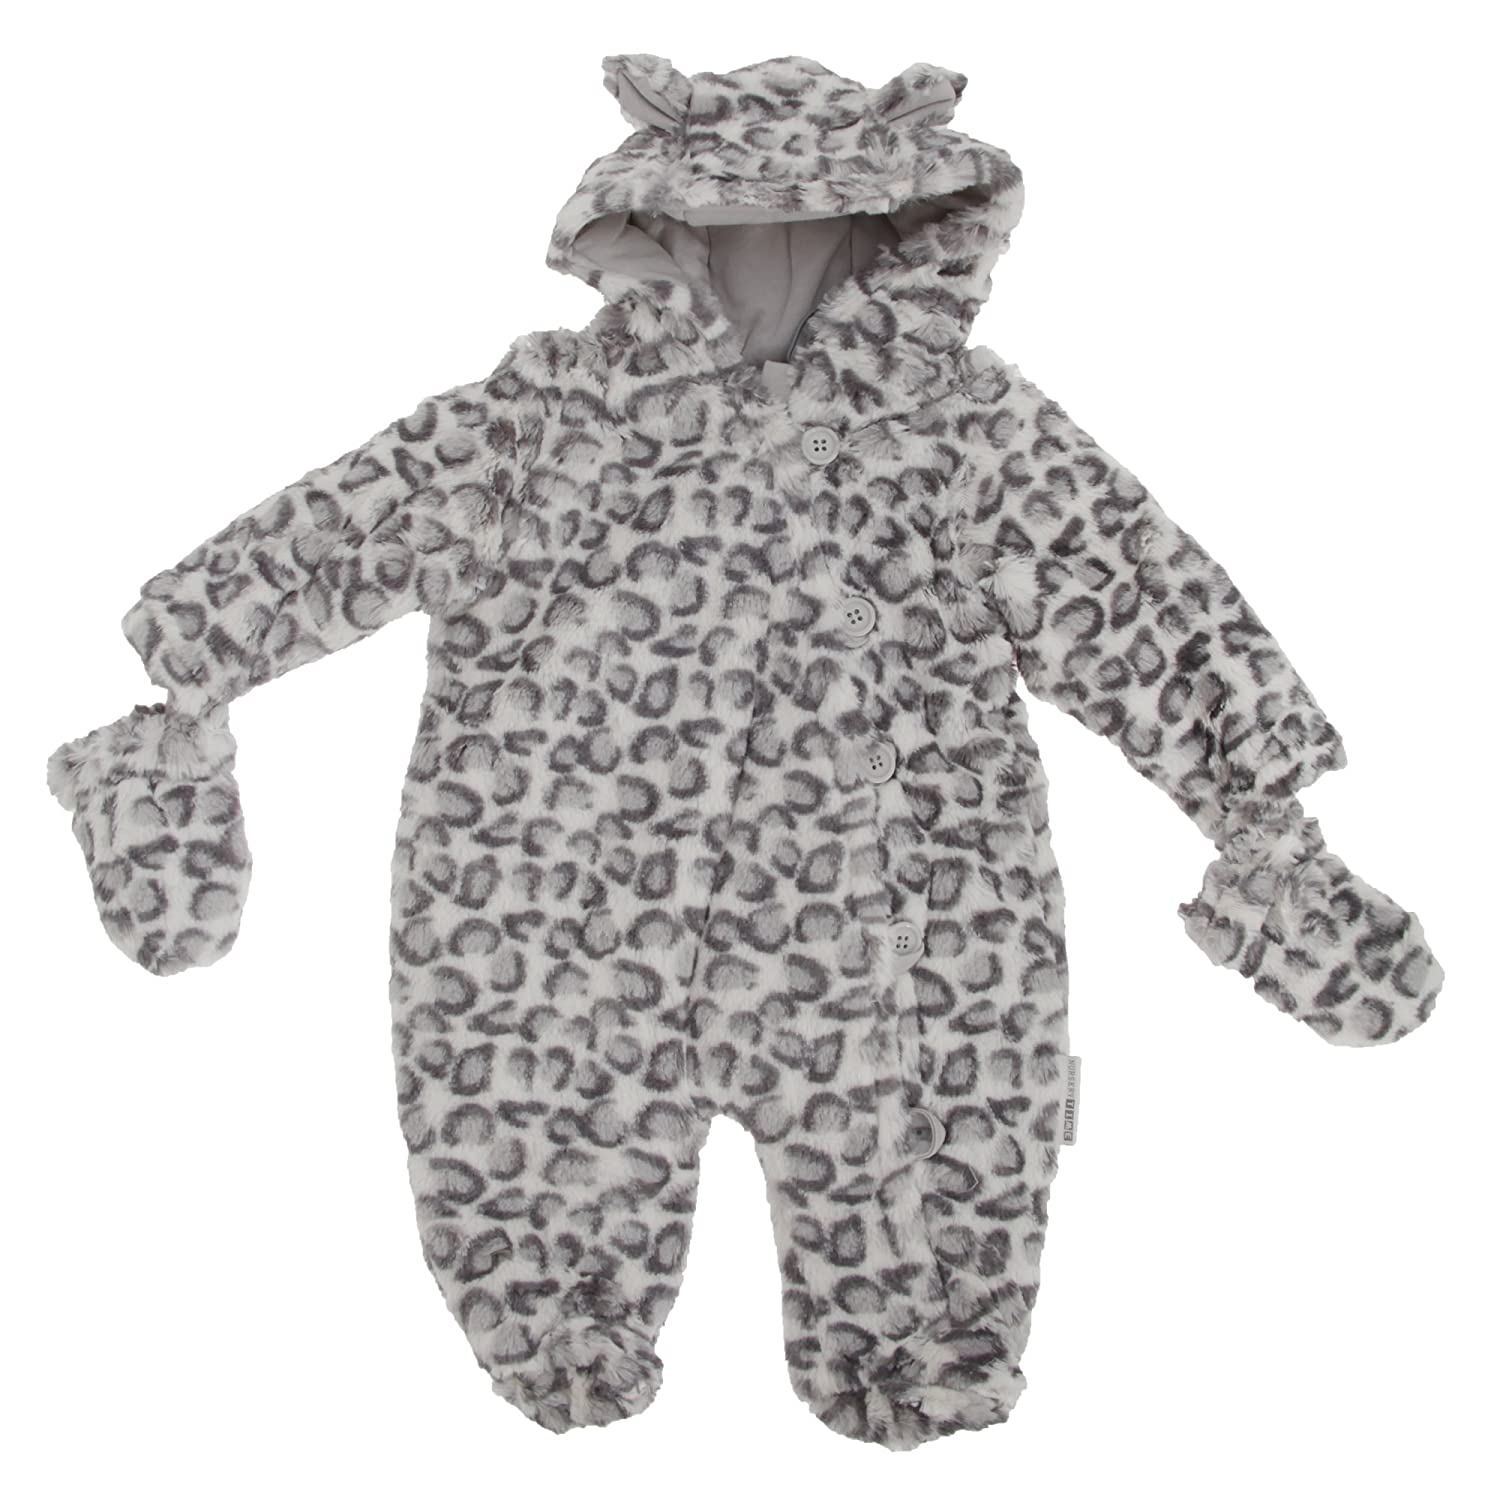 Baby Unisex Snow Leopard Button-Up All In One Hooded Winter Snowsuit (Newborn) (Snow Leopard) Universal Textiles UTBABY1033_3